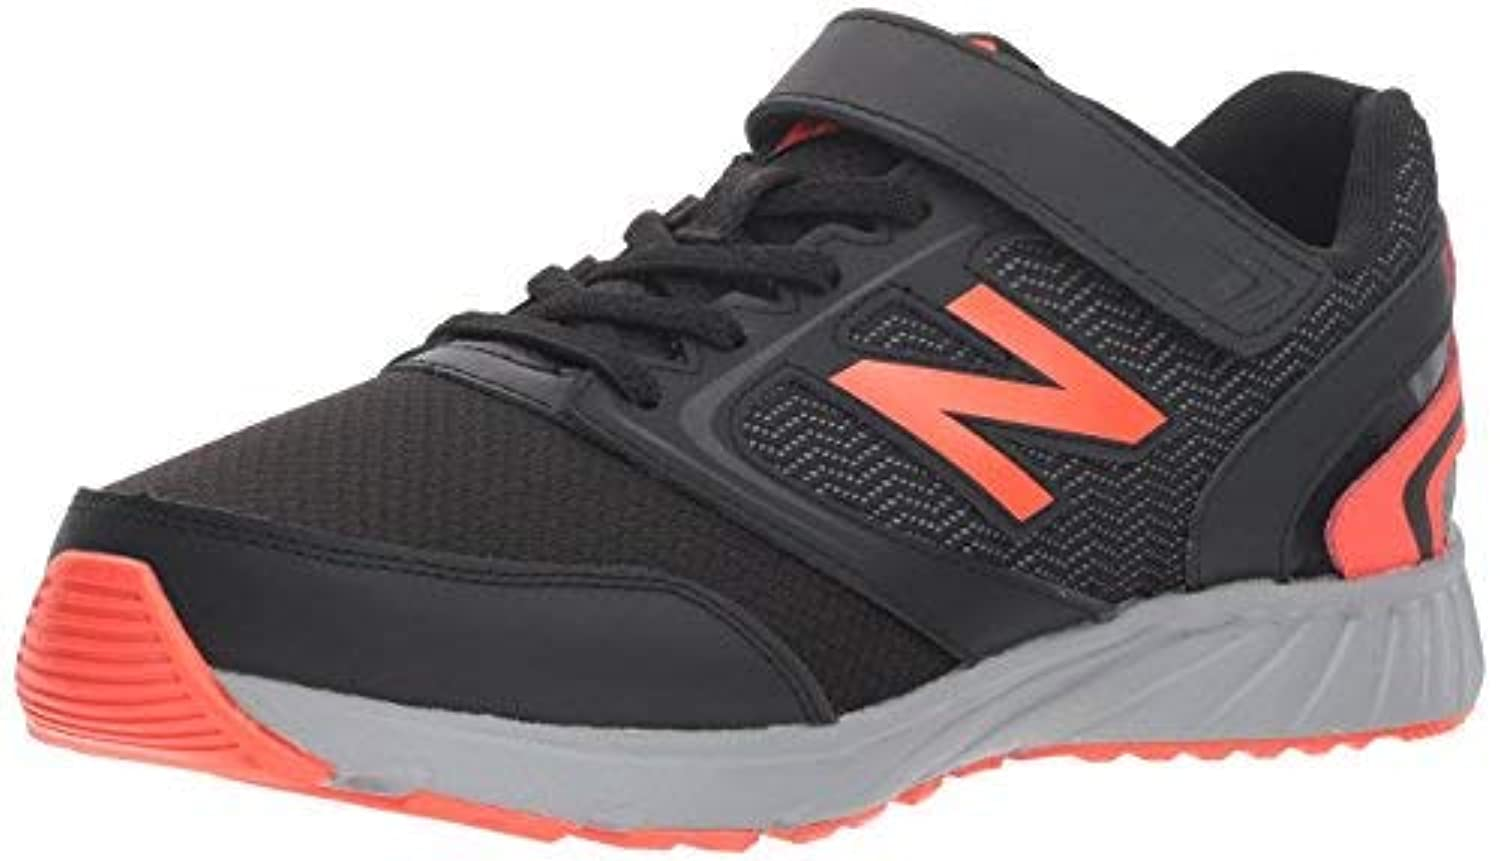 New Balance Boys' 455v1 Running Shoe Black/Flame KA 13.5 M US Little Kid [並行輸入品]